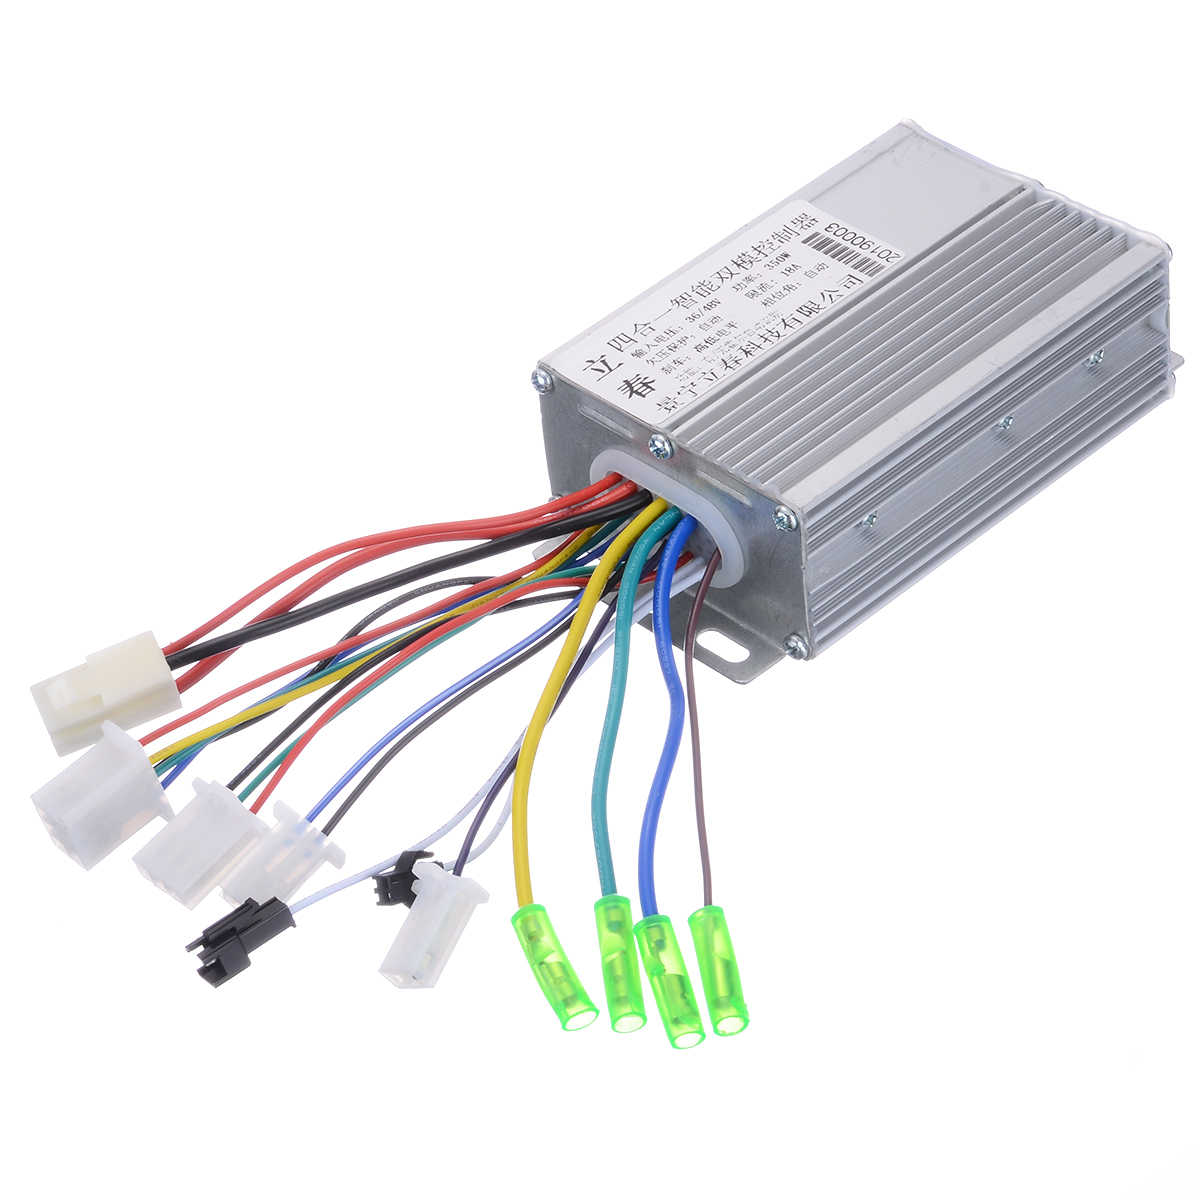 Electric Bicycle Accessories 36V/48V Electric Bike 350W Brushless DC Motor Controller 103x70x35mm For E-bike Scooter